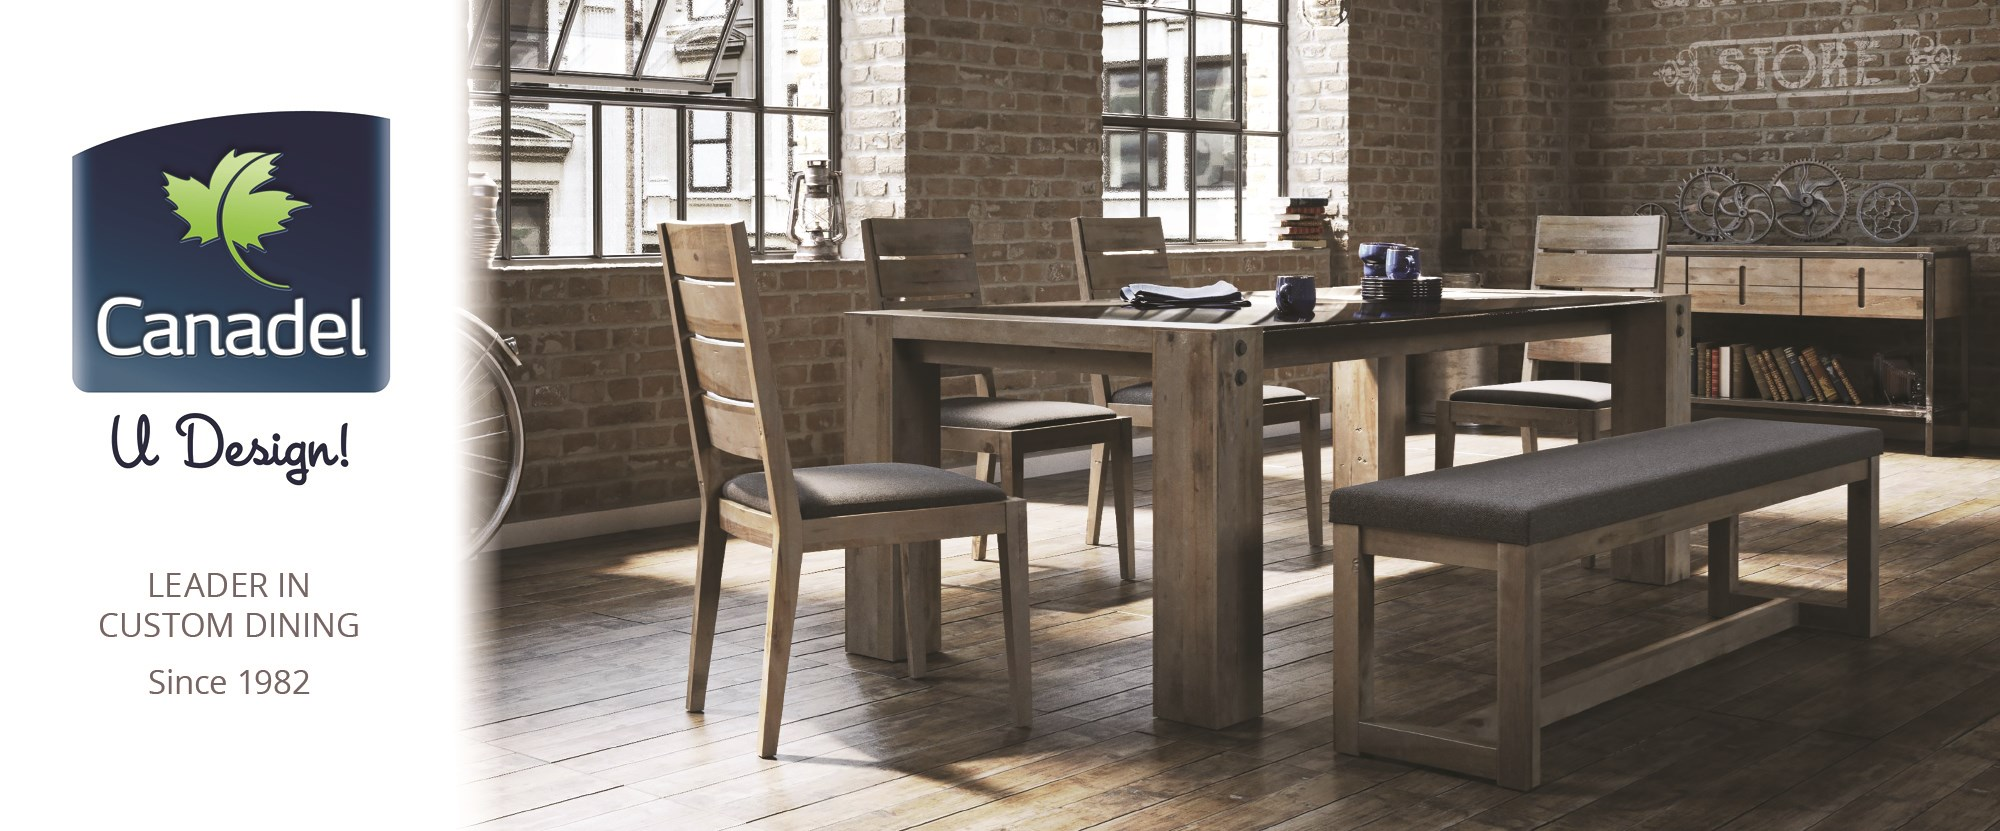 Canadel Custom Dining Furniture At Darvin Furniture Orland Park Chicago IL